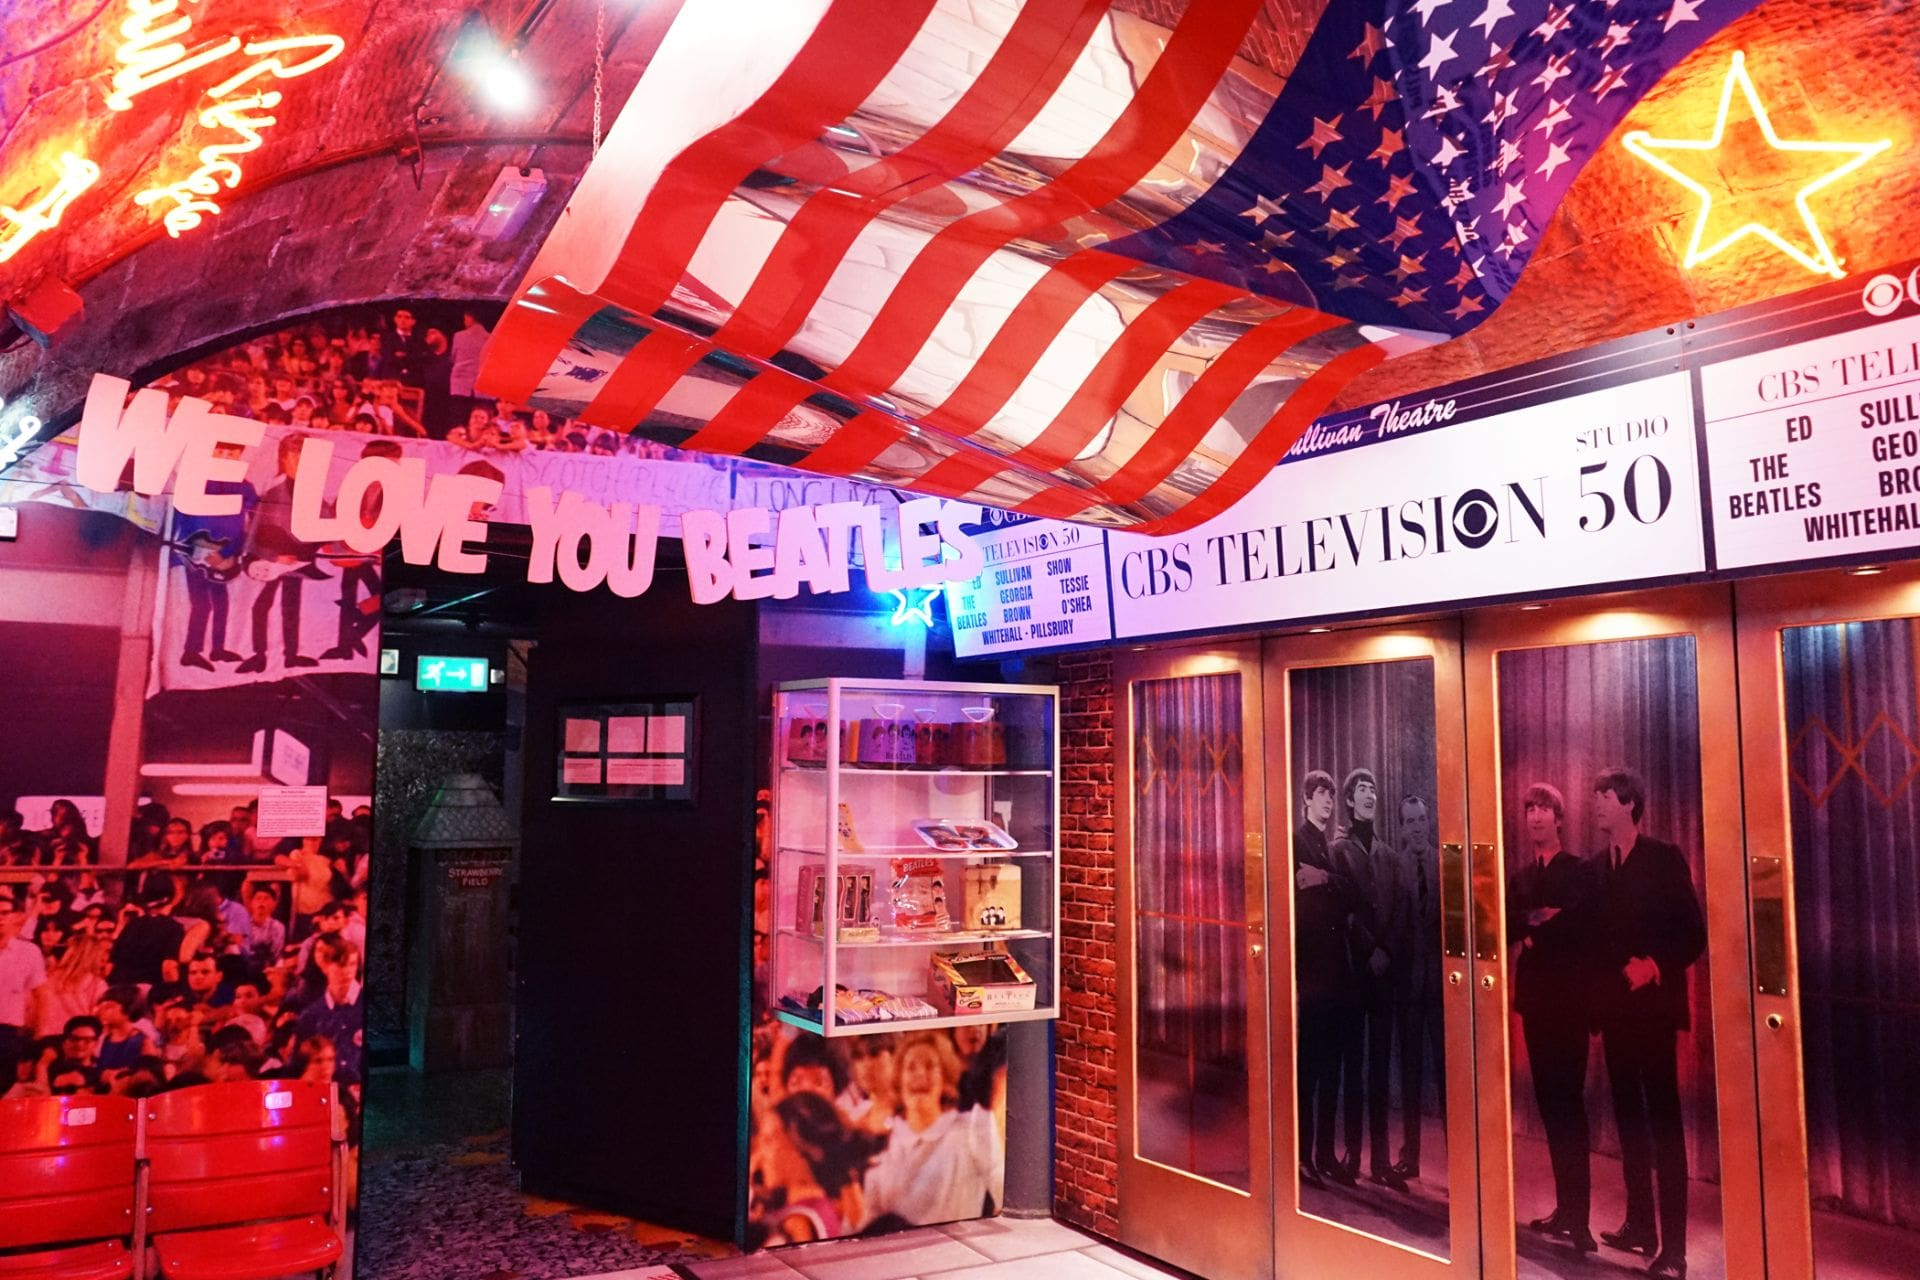 america-room-at-the-beatles-story-museum-weekend-in-liverpool-itinerary